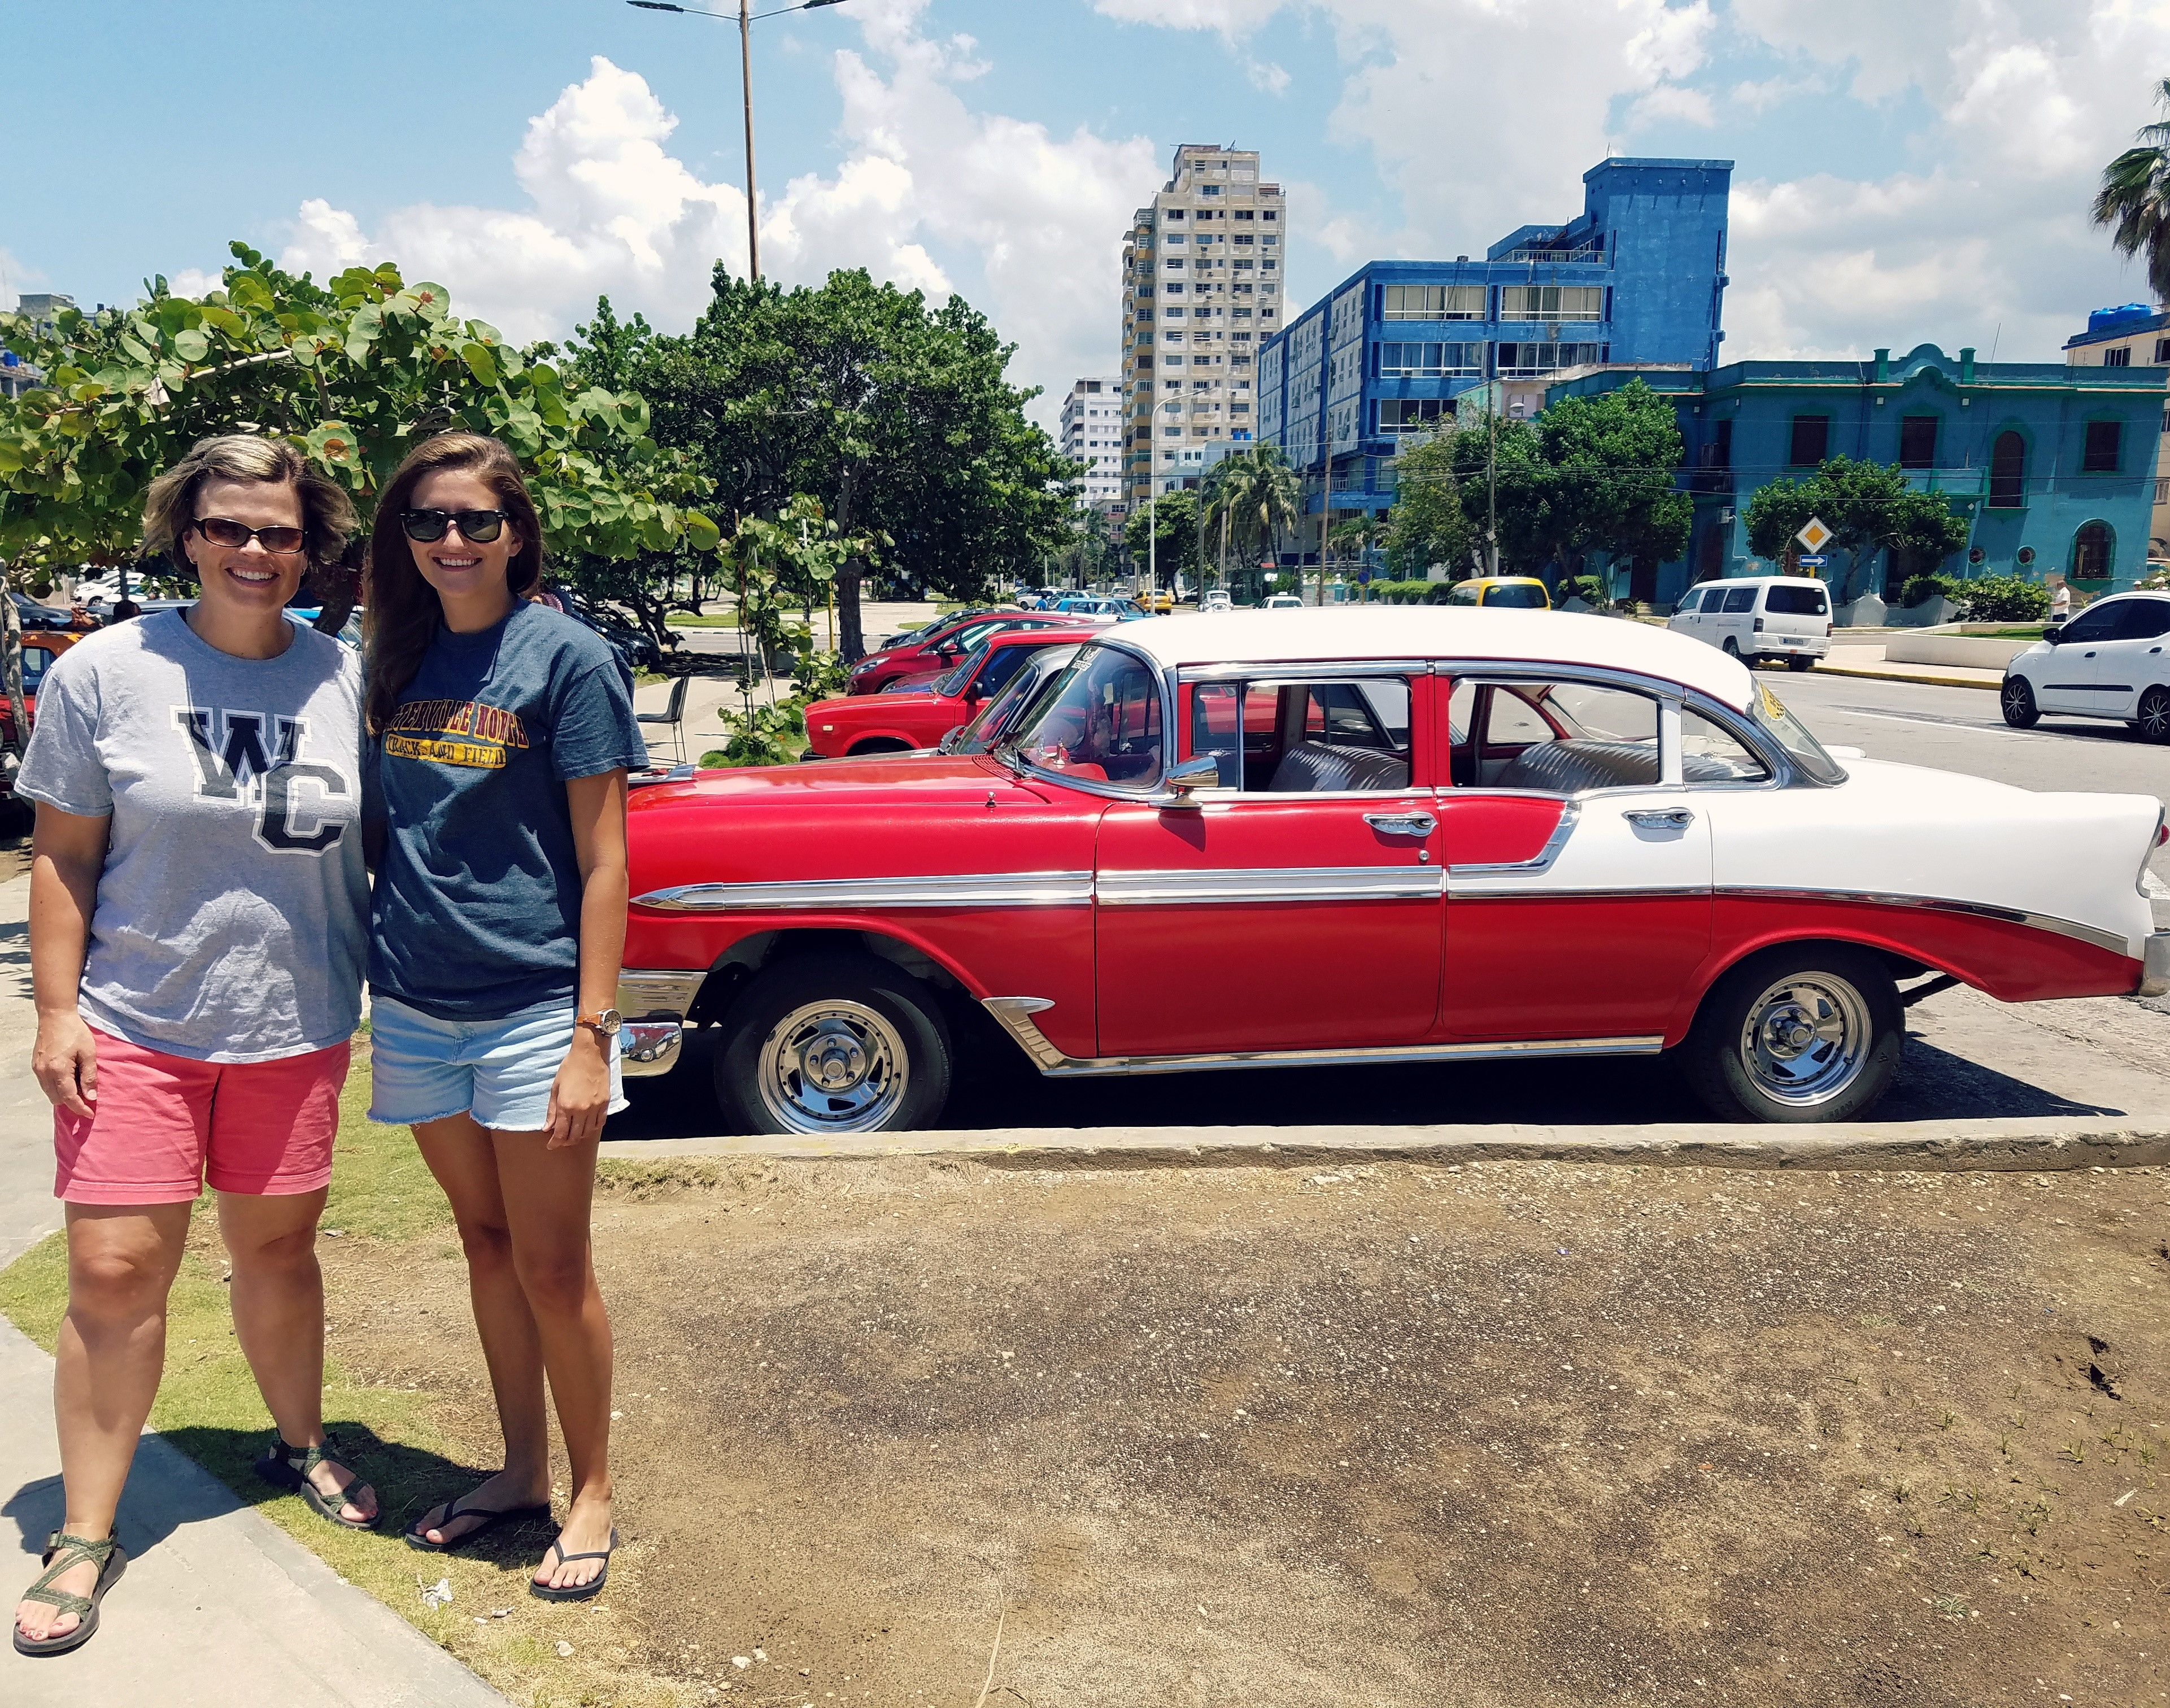 Spanish teachers pose in front of a vintage 1957 Chevy, parked in Havana.